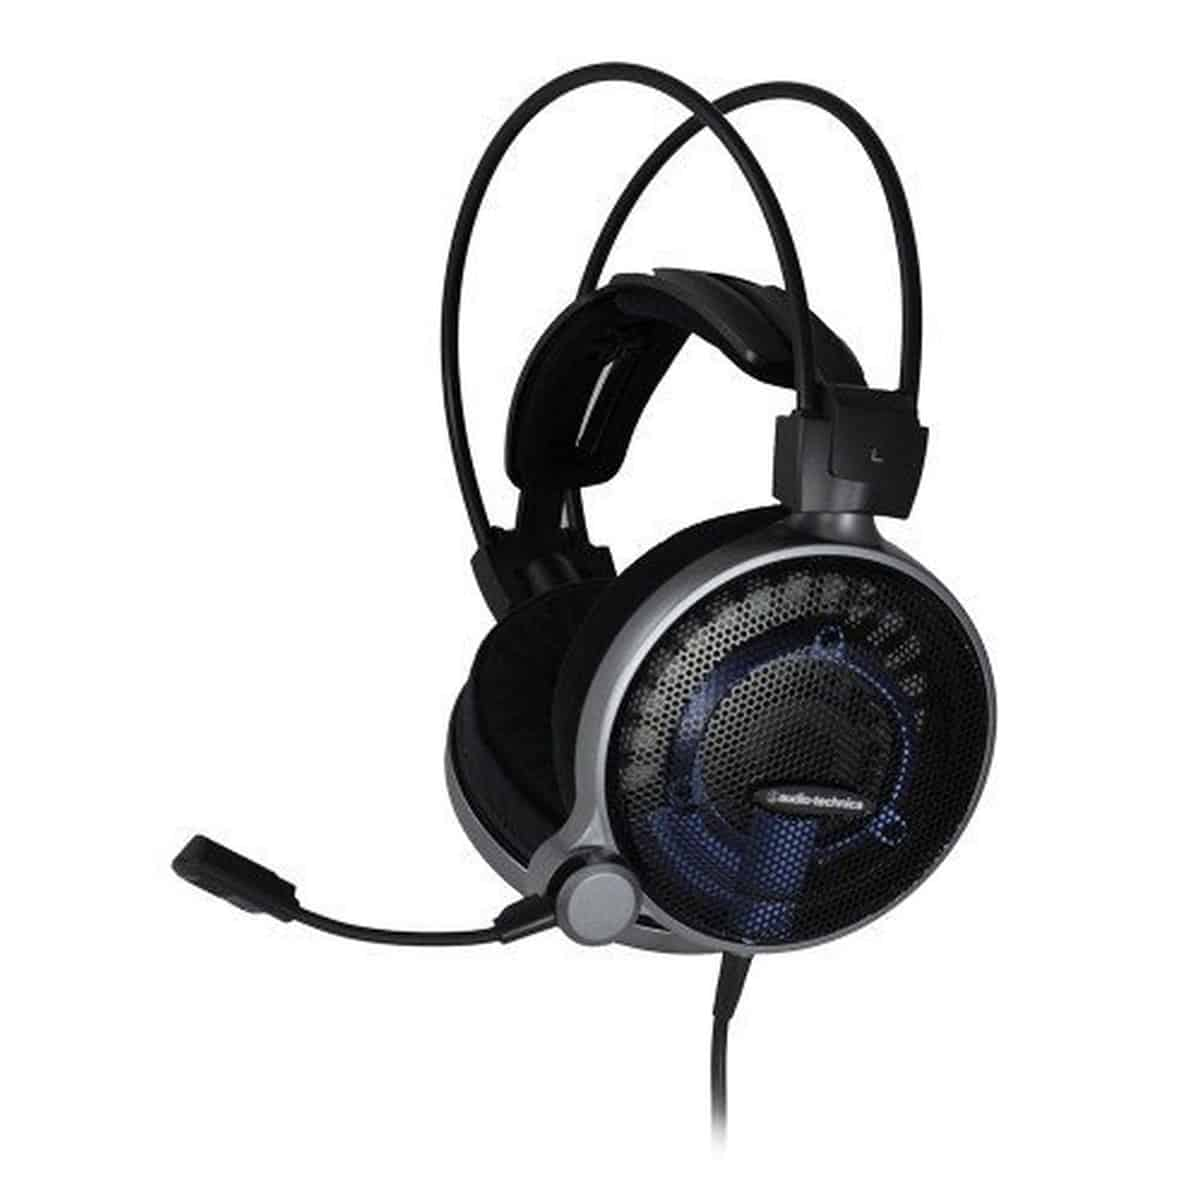 Audio-Technica ATH-ADG1X | Best Gaming Headset On Amazon